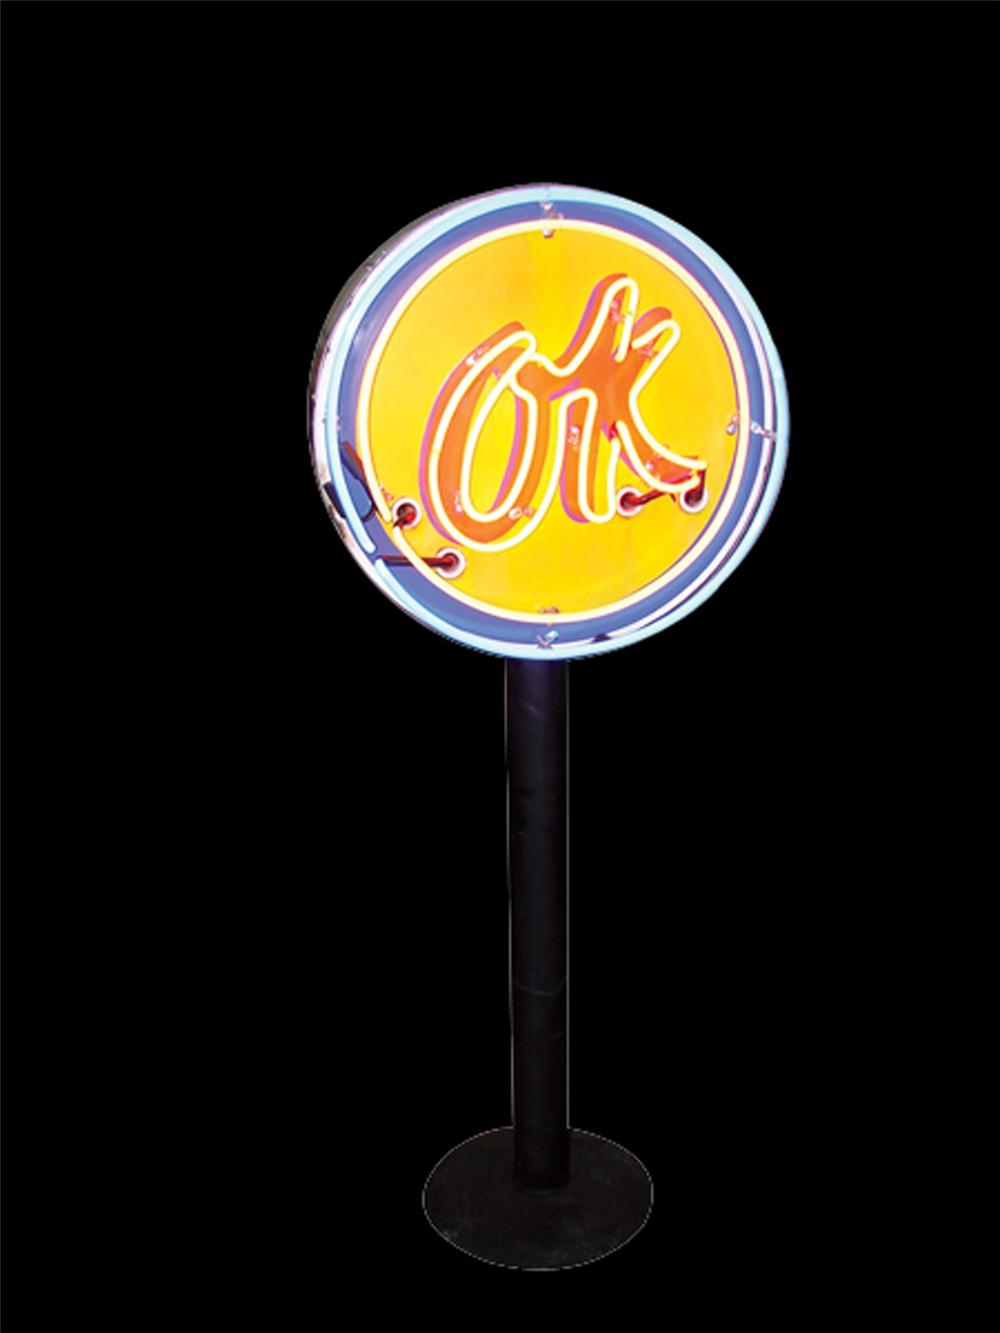 Wonderful 1950s Chevrolet OK Used Cars single-sided porcelain neon sign on stand. - Front 3/4 - 117046